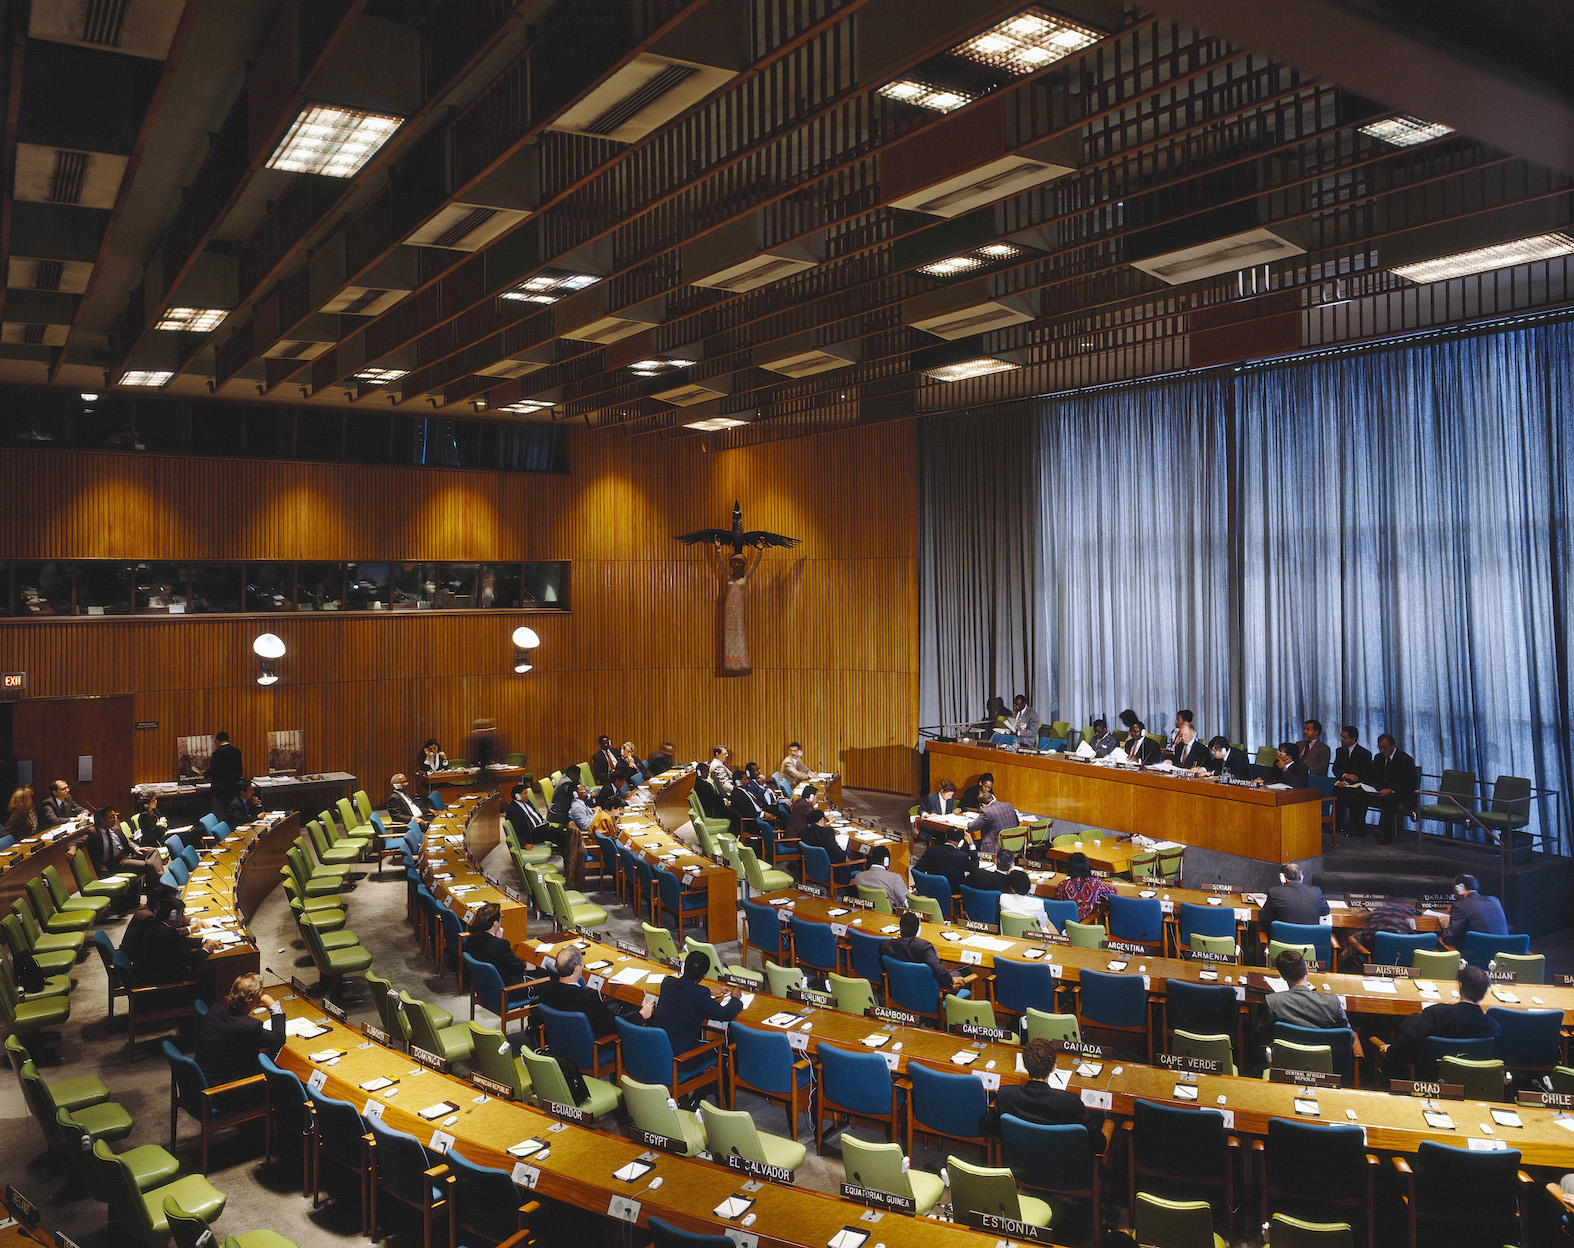 A general view of the Trusteeship Council Chamber at United Nations Headquarters. [1993]